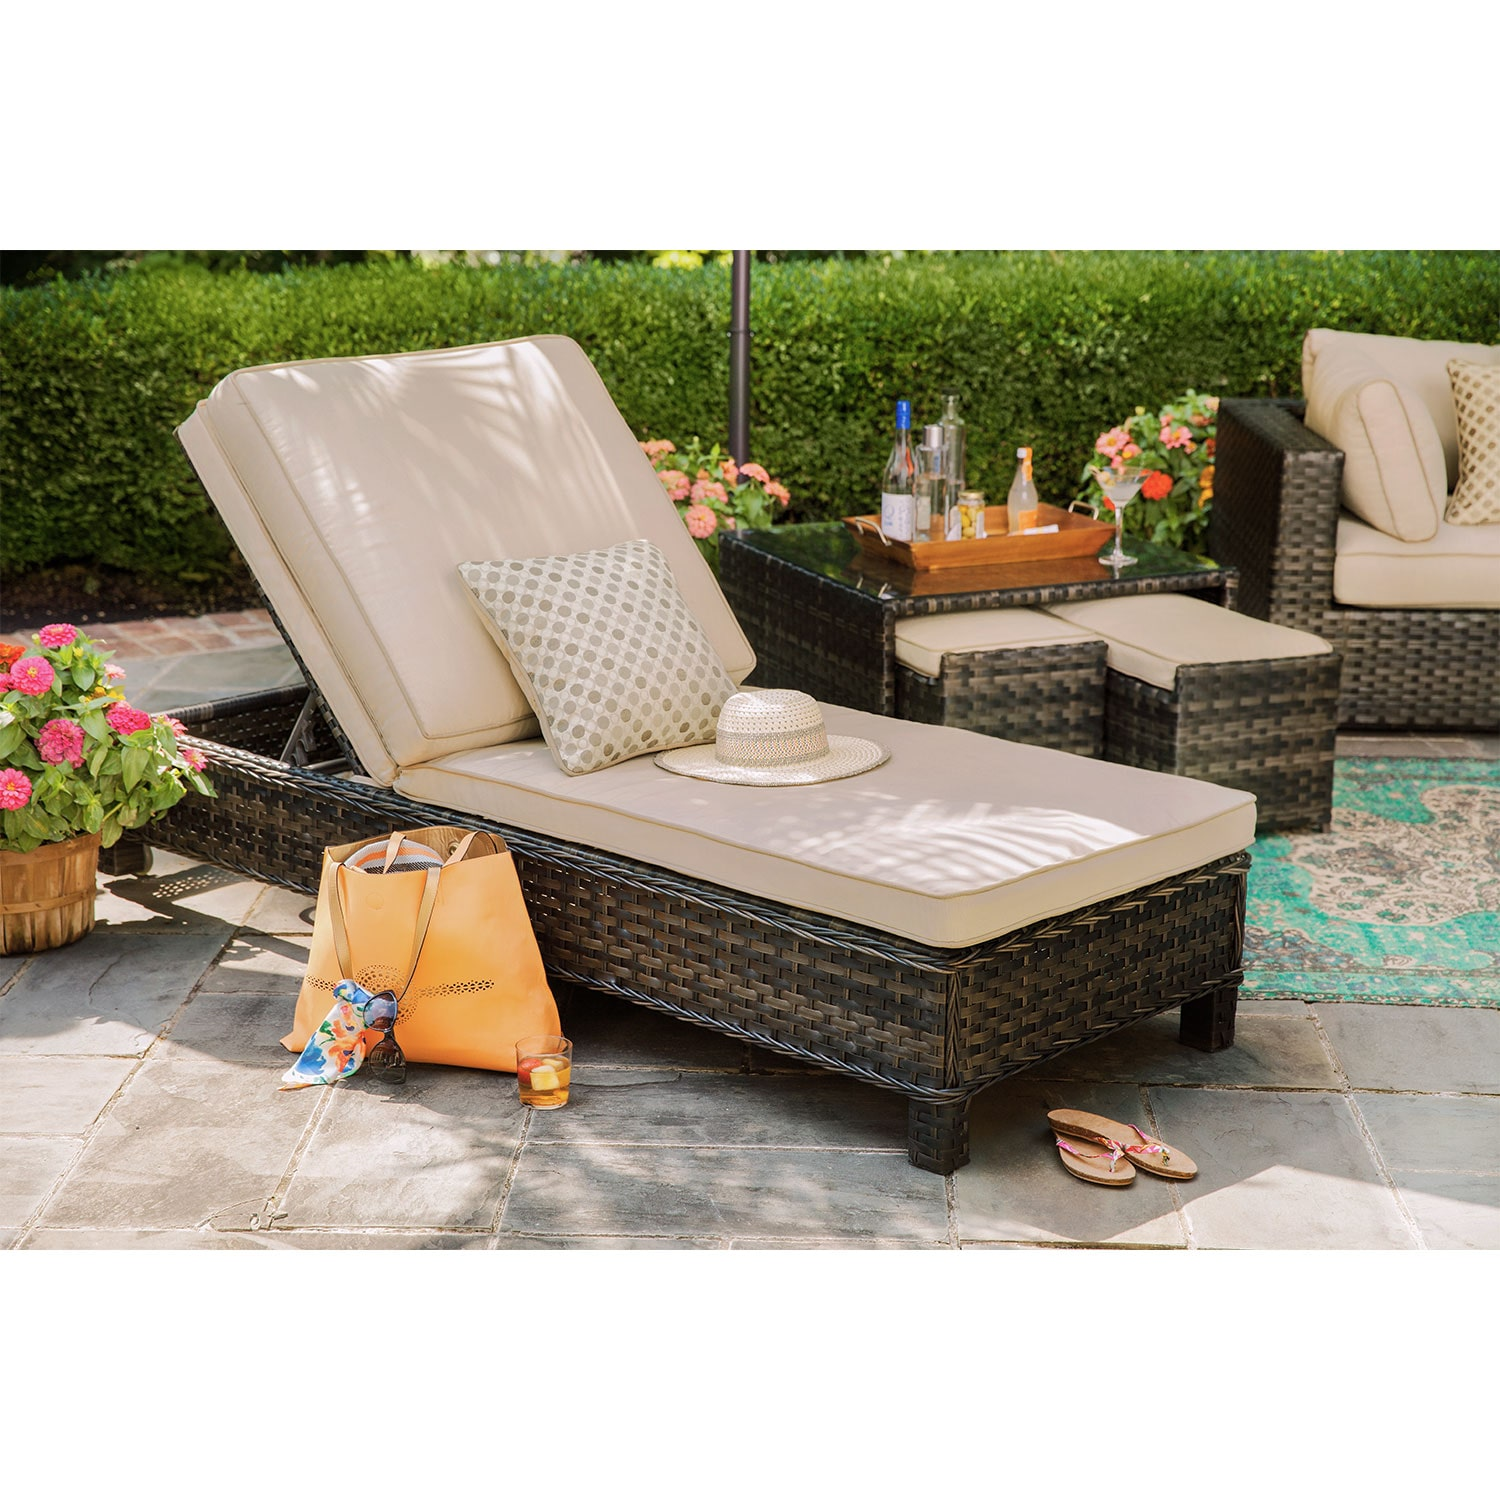 Outdoor Furniture - Regatta Outdoor Chaise Lounge - Brown